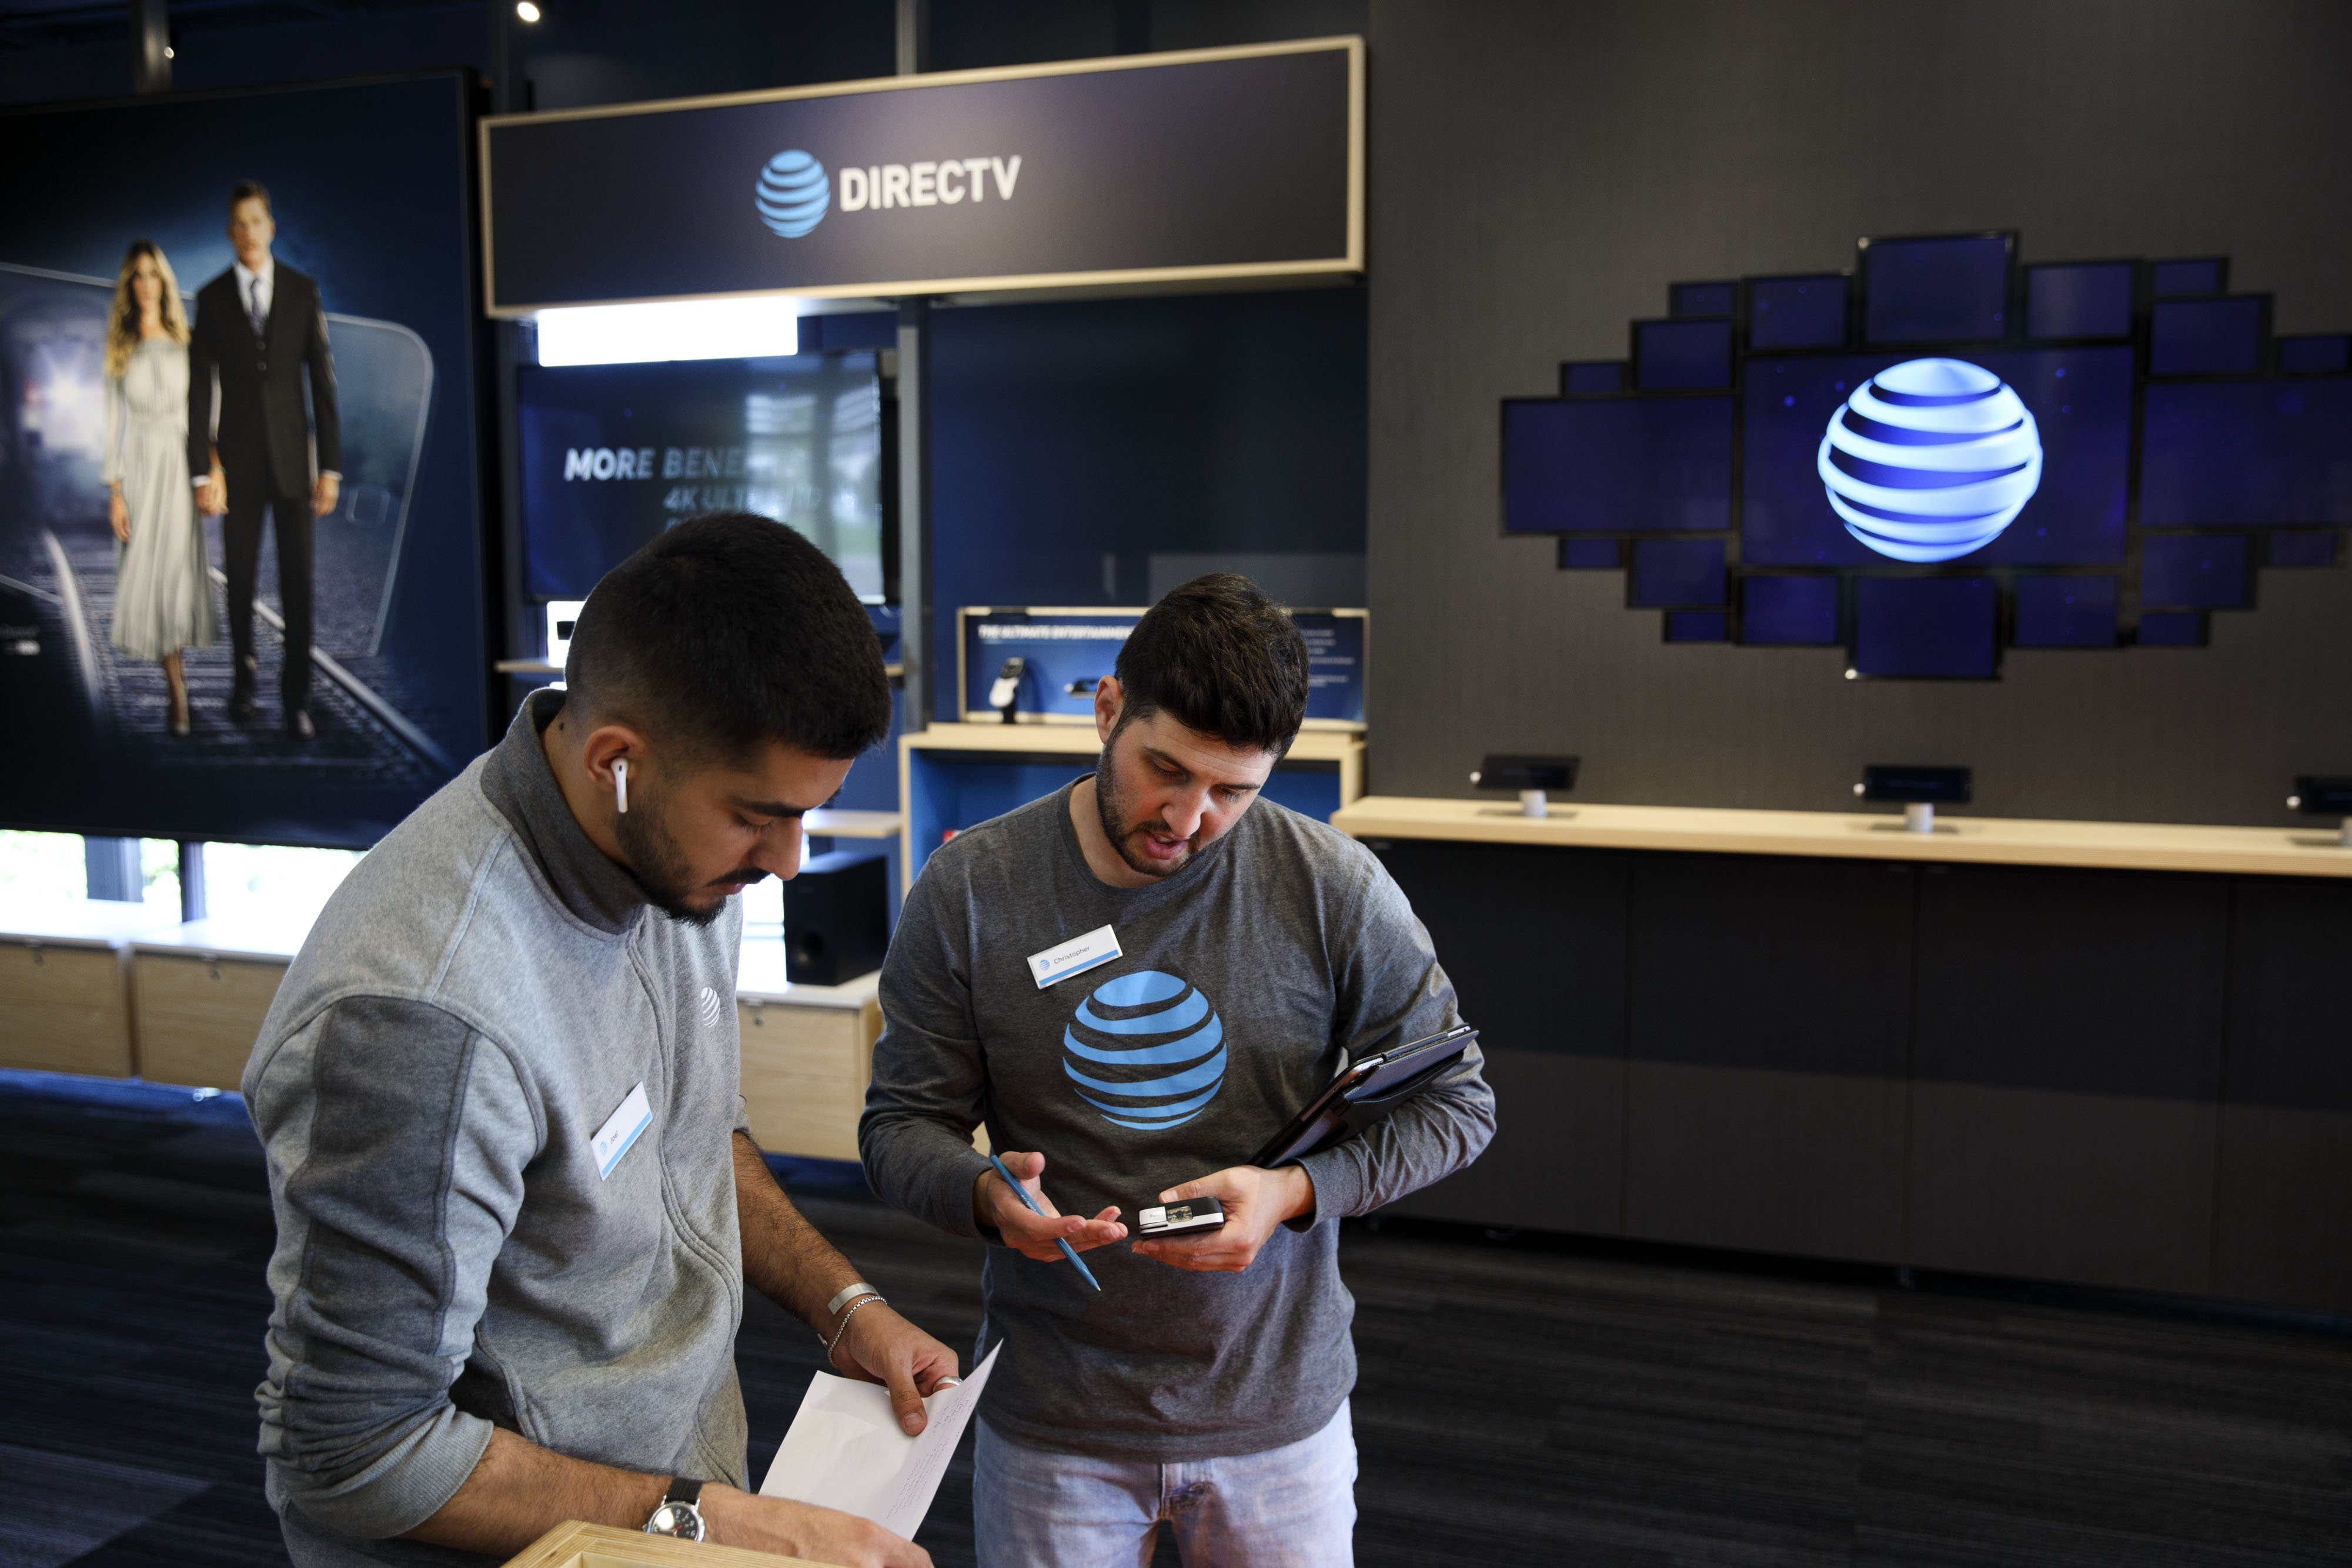 AT&T is reportedly exploring a sale of DirecTV